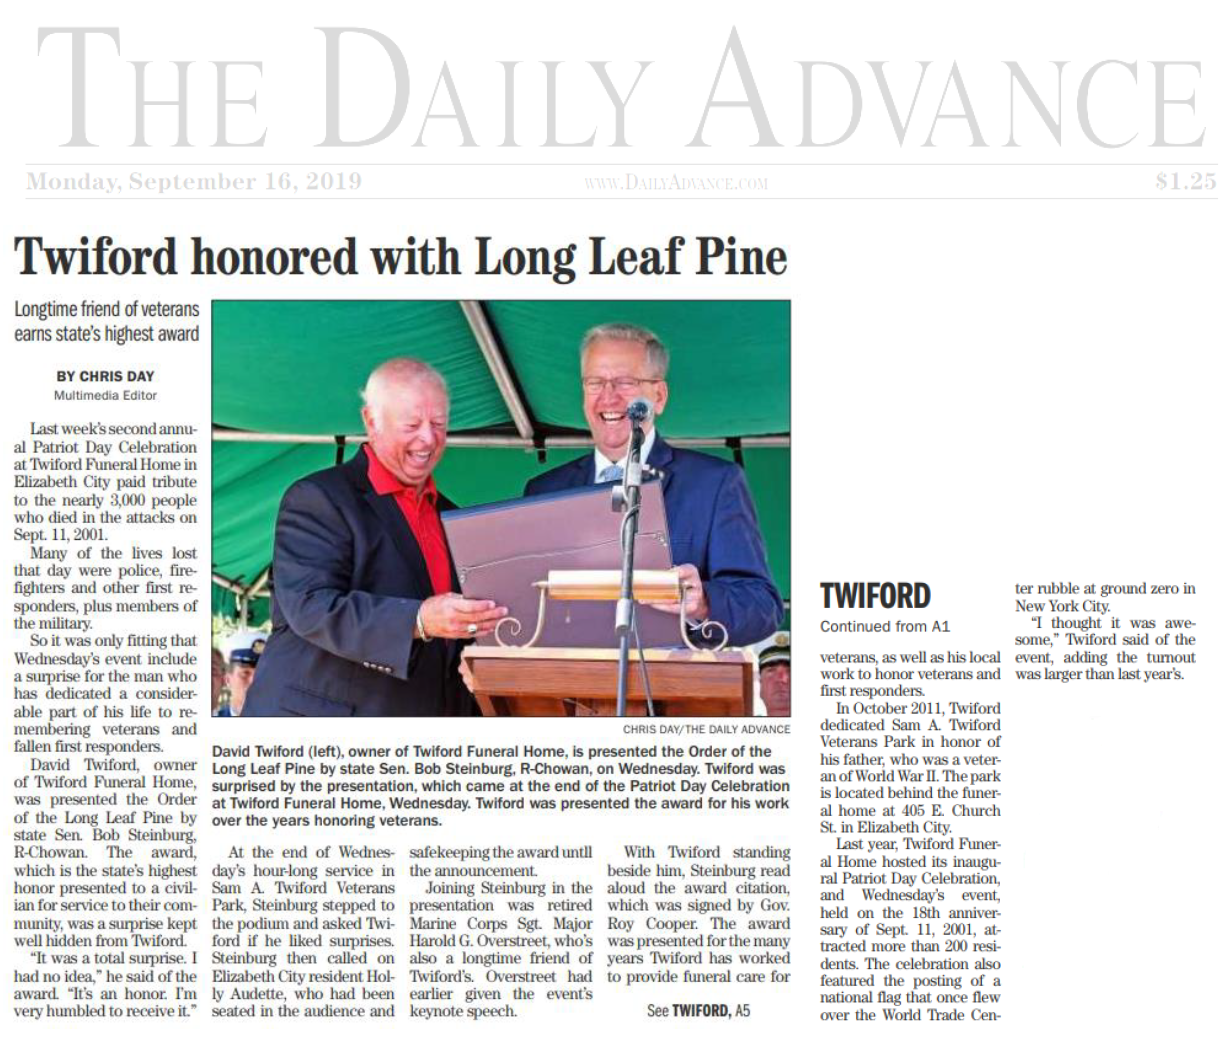 Twiford honored with Long Leaf Pine